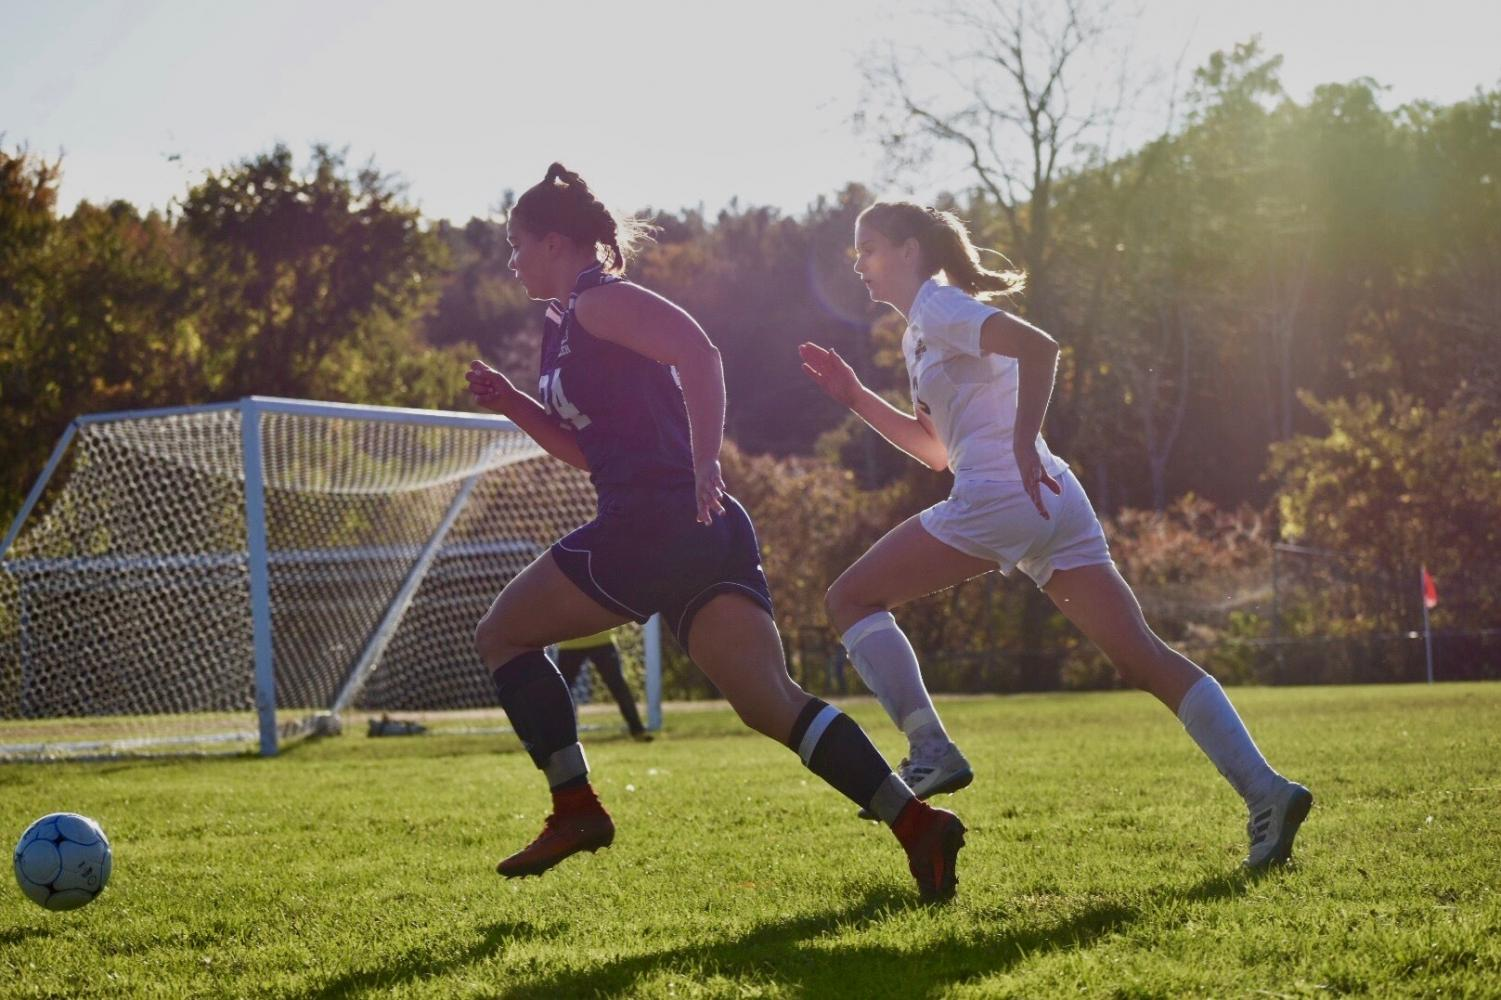 """Tasha White '20 during a 2018 regular season game against Souhegan, chasing the ball as she approaches goal. This is the third season she has been a starter for the Hollis Brookline Varsity girls soccer team. """"We have the full potential everywhere on the field to make playoffs, even if someone is not there,"""" said White."""